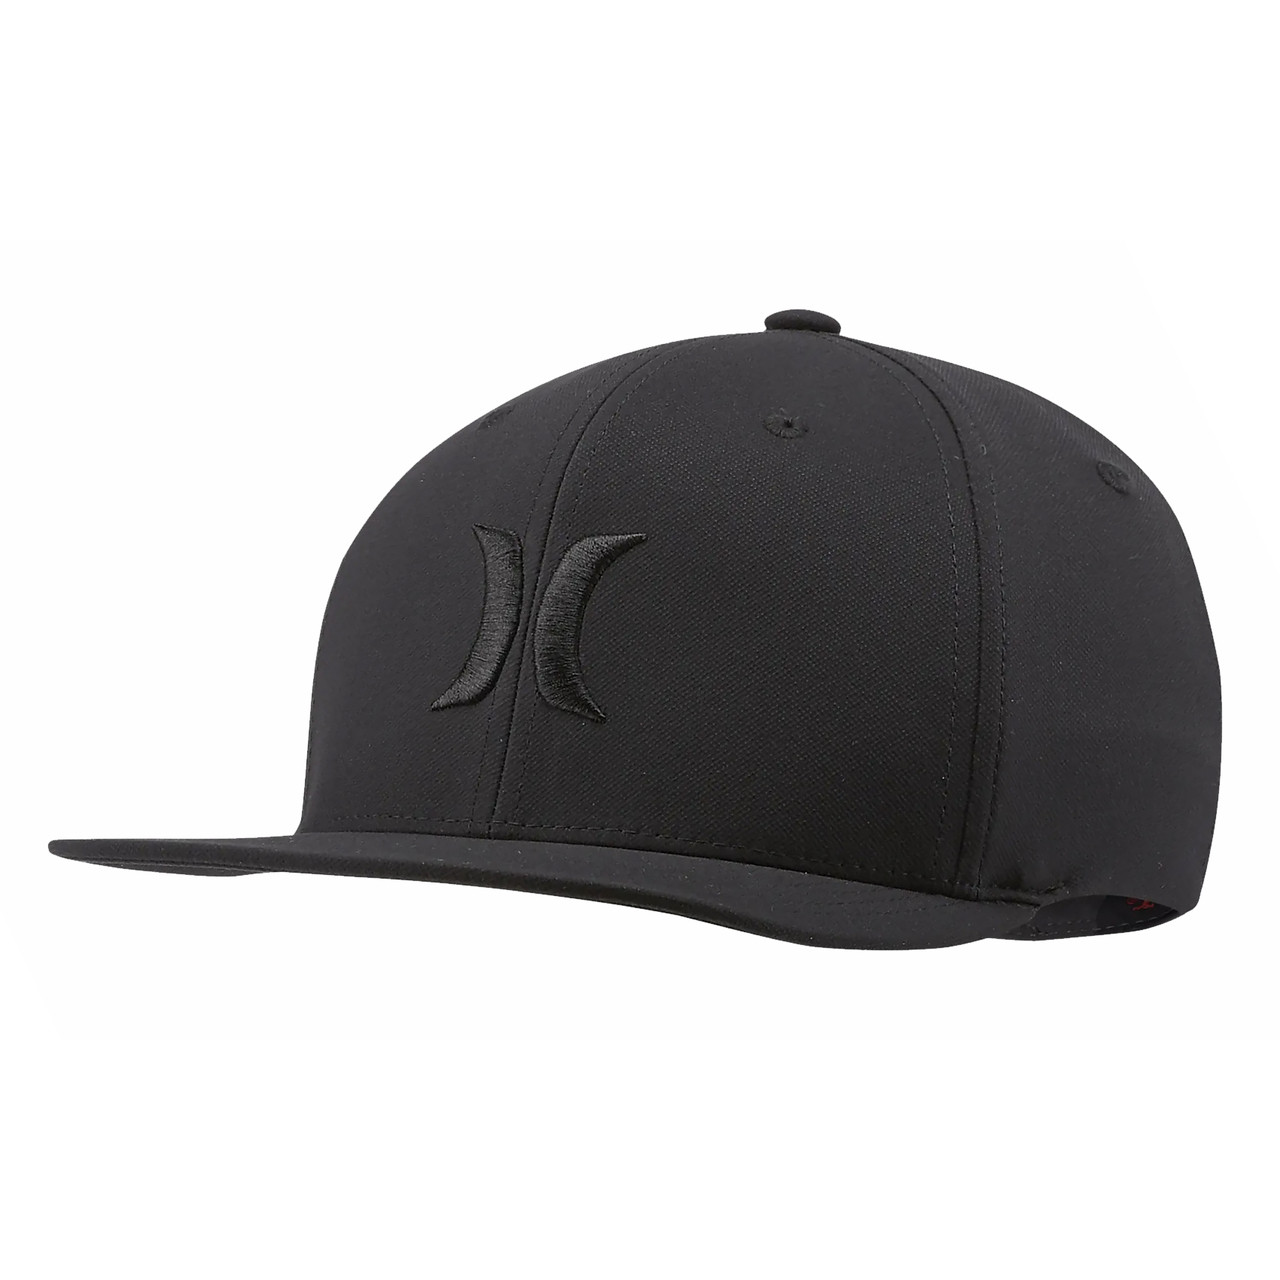 e6d9f6974 Hurley Hat - One and Only Dri-Fit - Black/Black